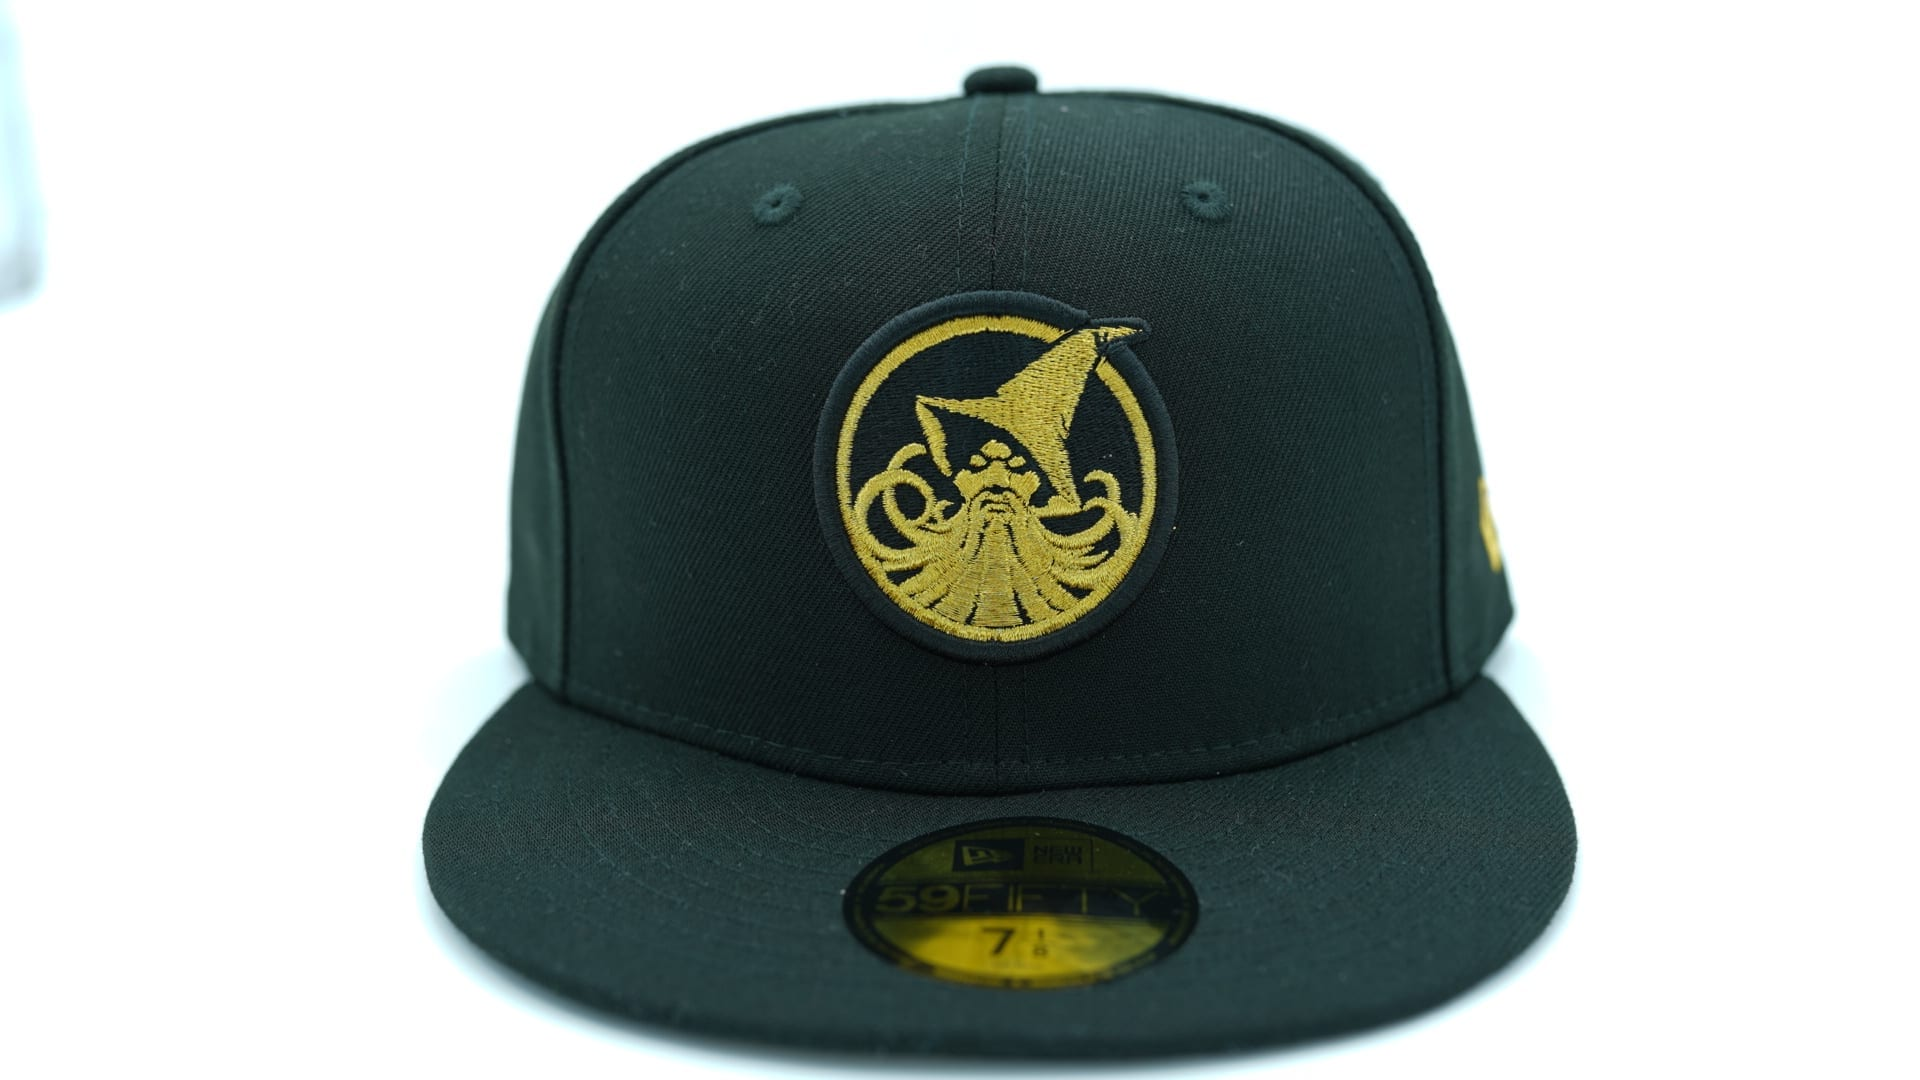 New-Era-Virgin-Islands-fitted-baseball-cap-1-web